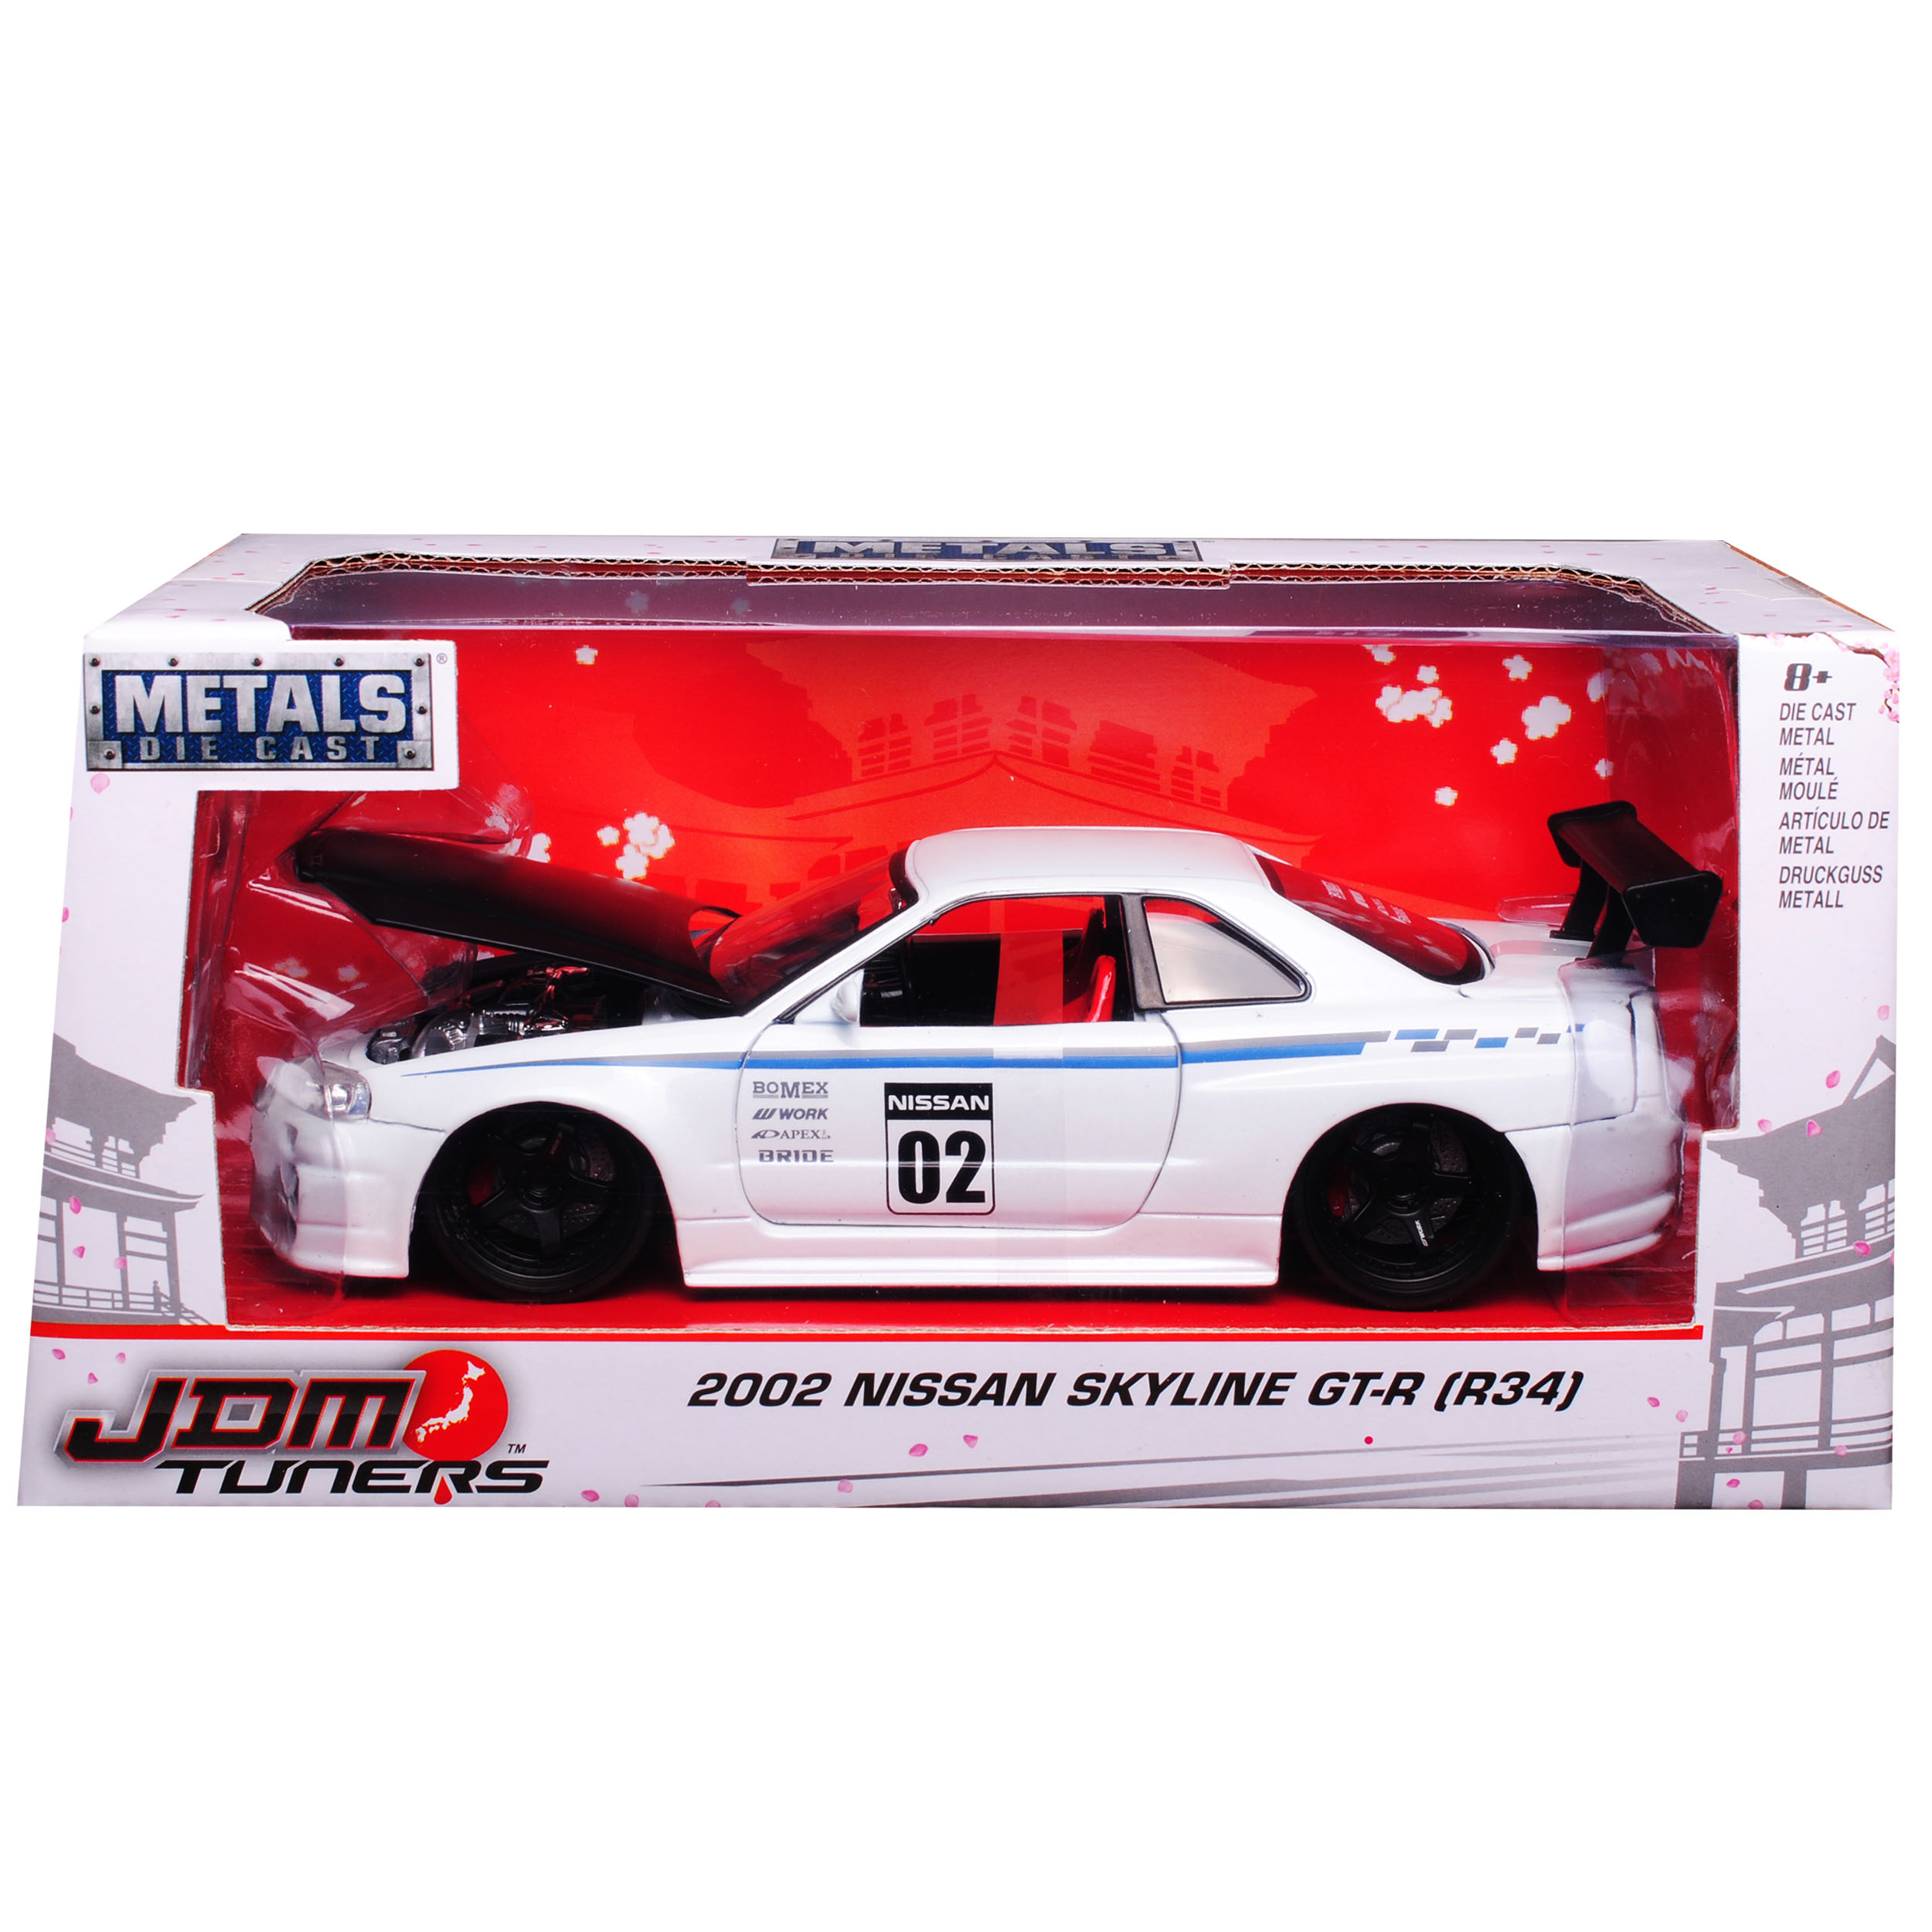 Nissan Skyline GT-R r34 Coupe Weiss tuning 1998-2002 1//24 jada modelo coche con...